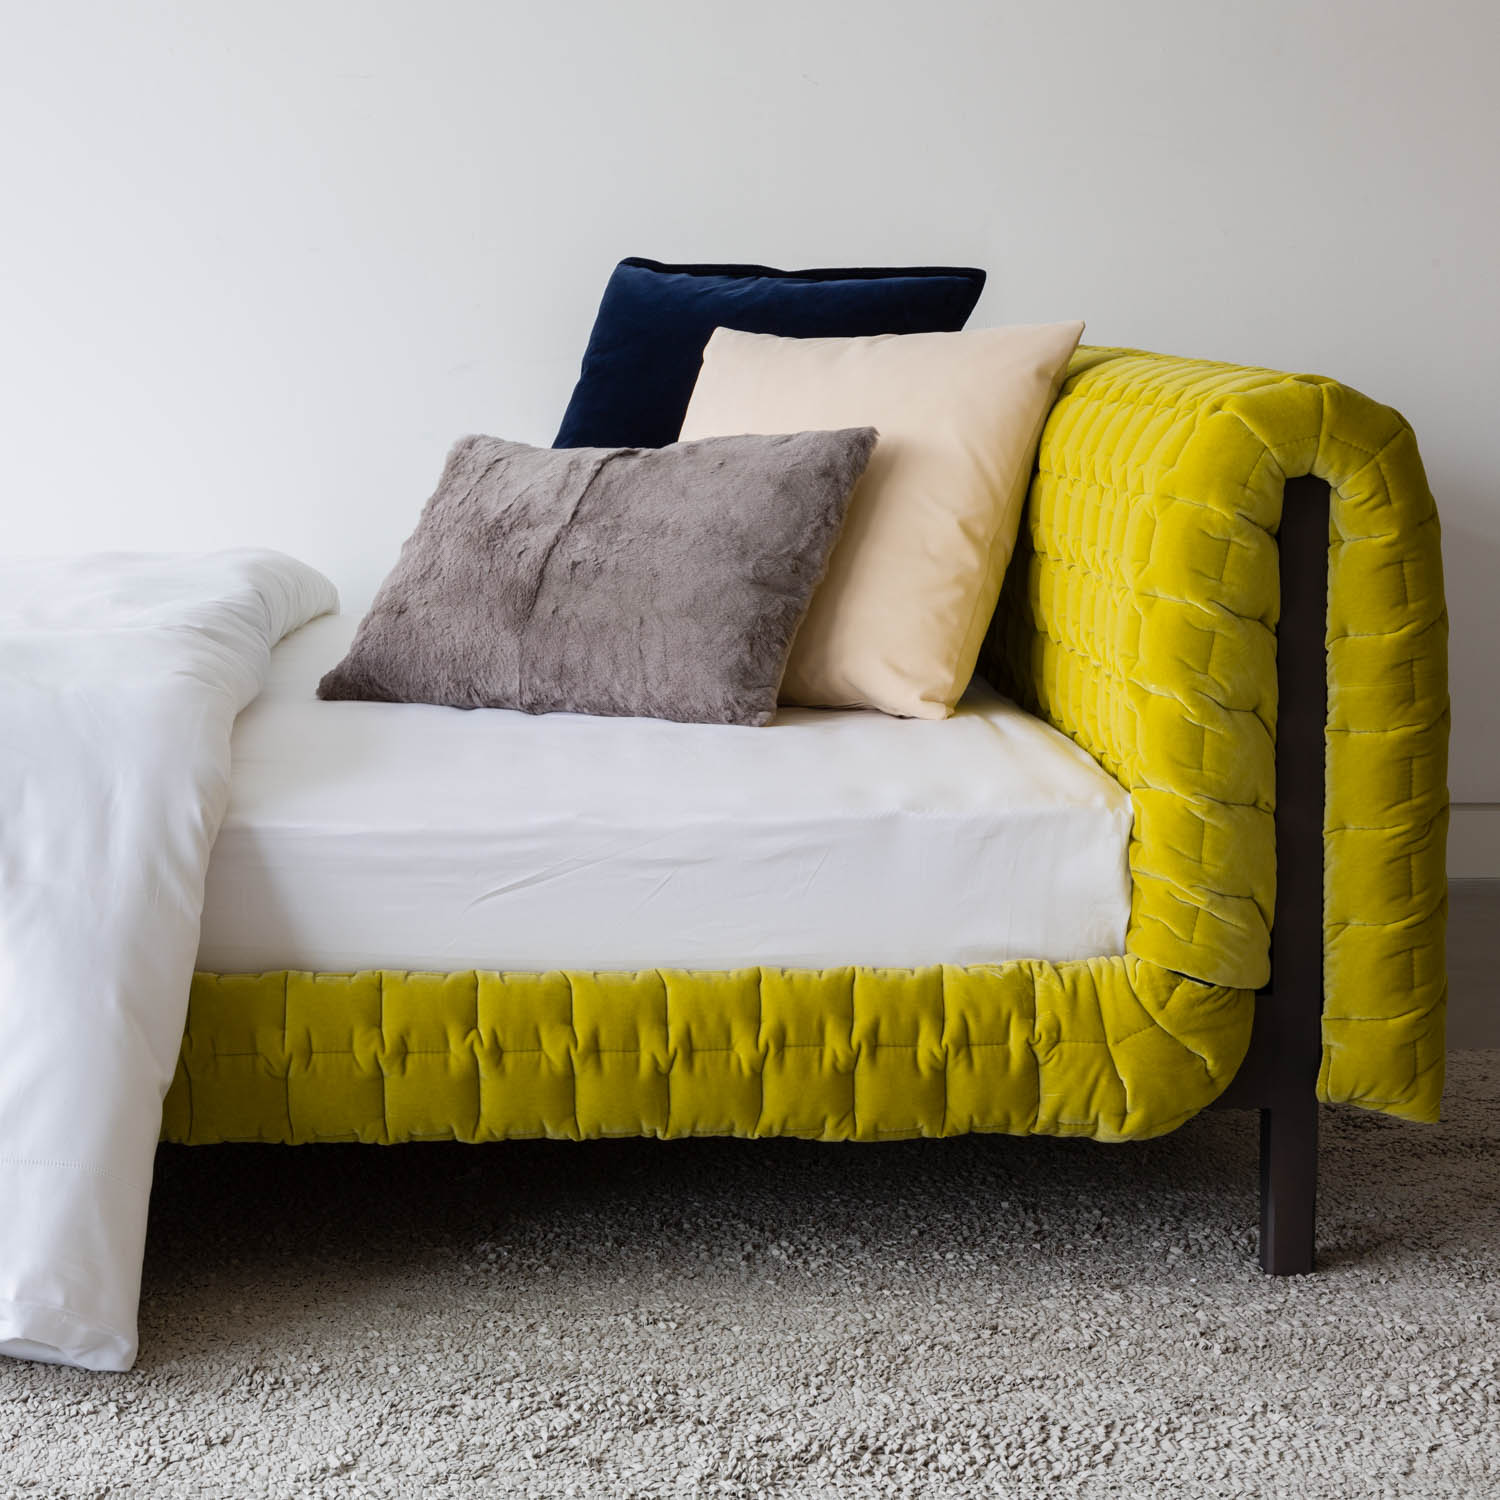 Interior design detailing, bedding and cushions